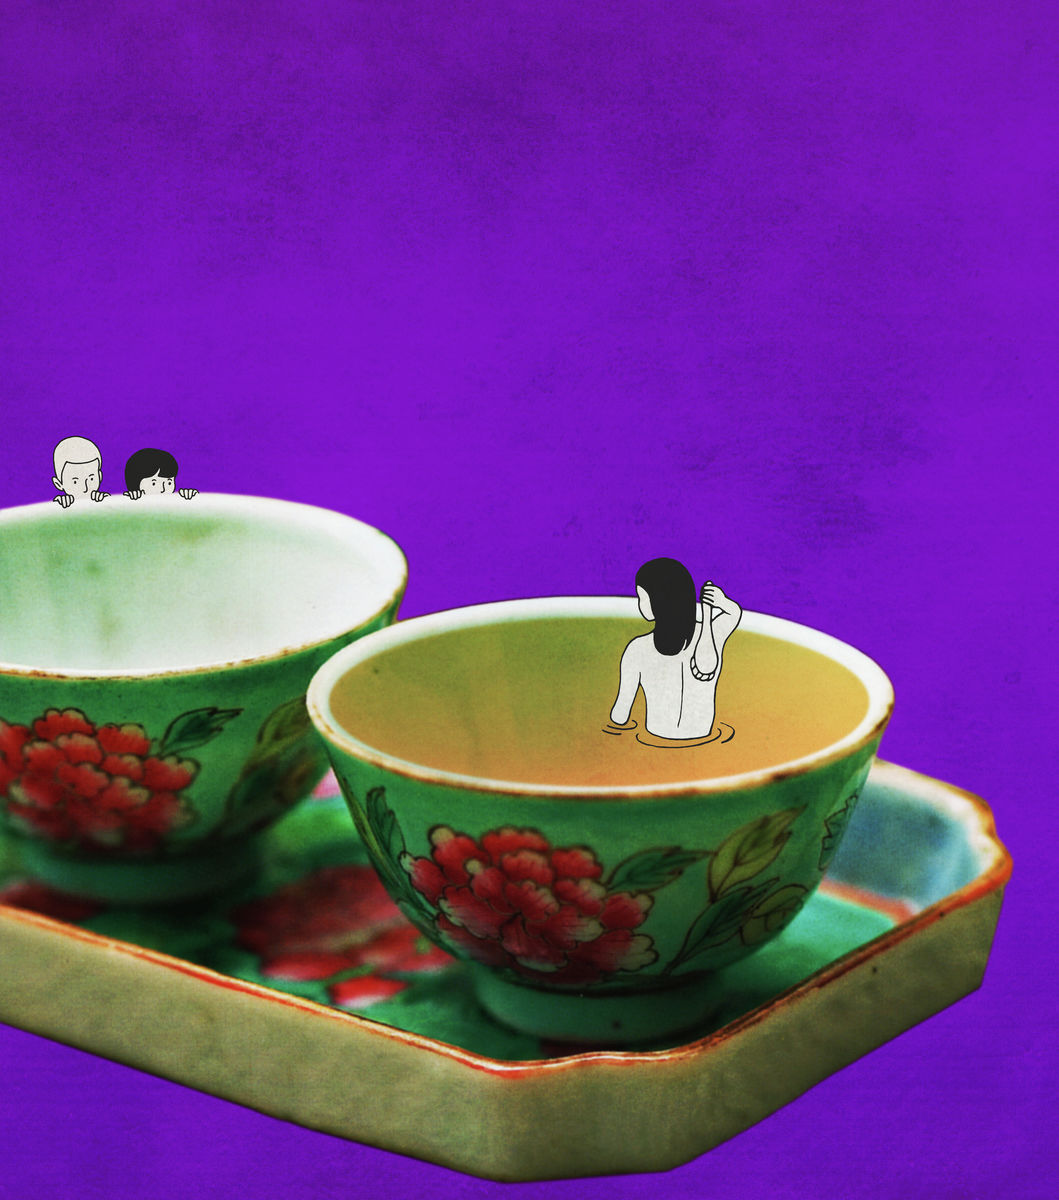 Peranakan Miniature (Cups of Tea)